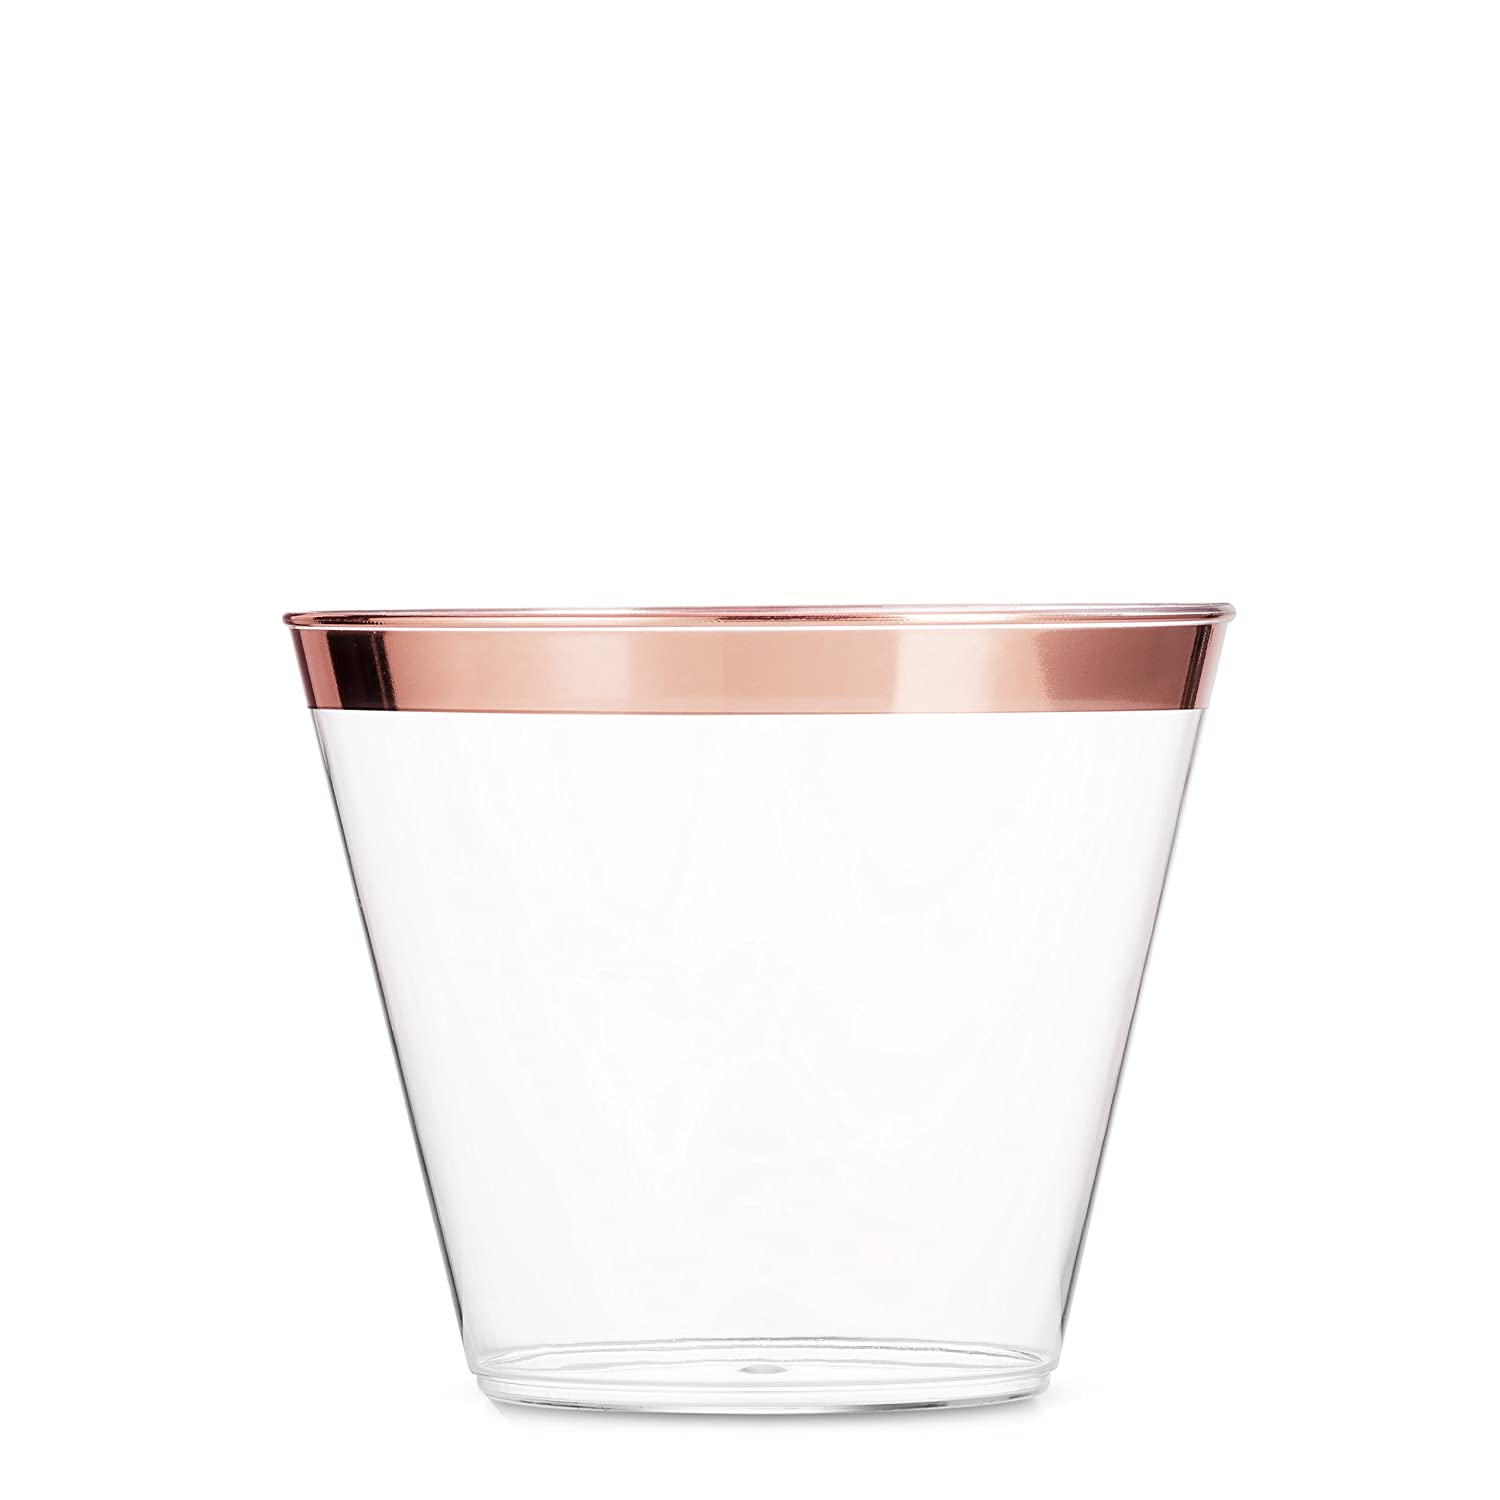 100 Rose Gold Plastic Cups ~ 9 Oz Clear Plastic Cups Old Fashioned Tumblers ~ Rose Gold Rimmed Cups Fancy Disposable Wedding Cups ~ Elegant Party Cups with Rose Gold Rim